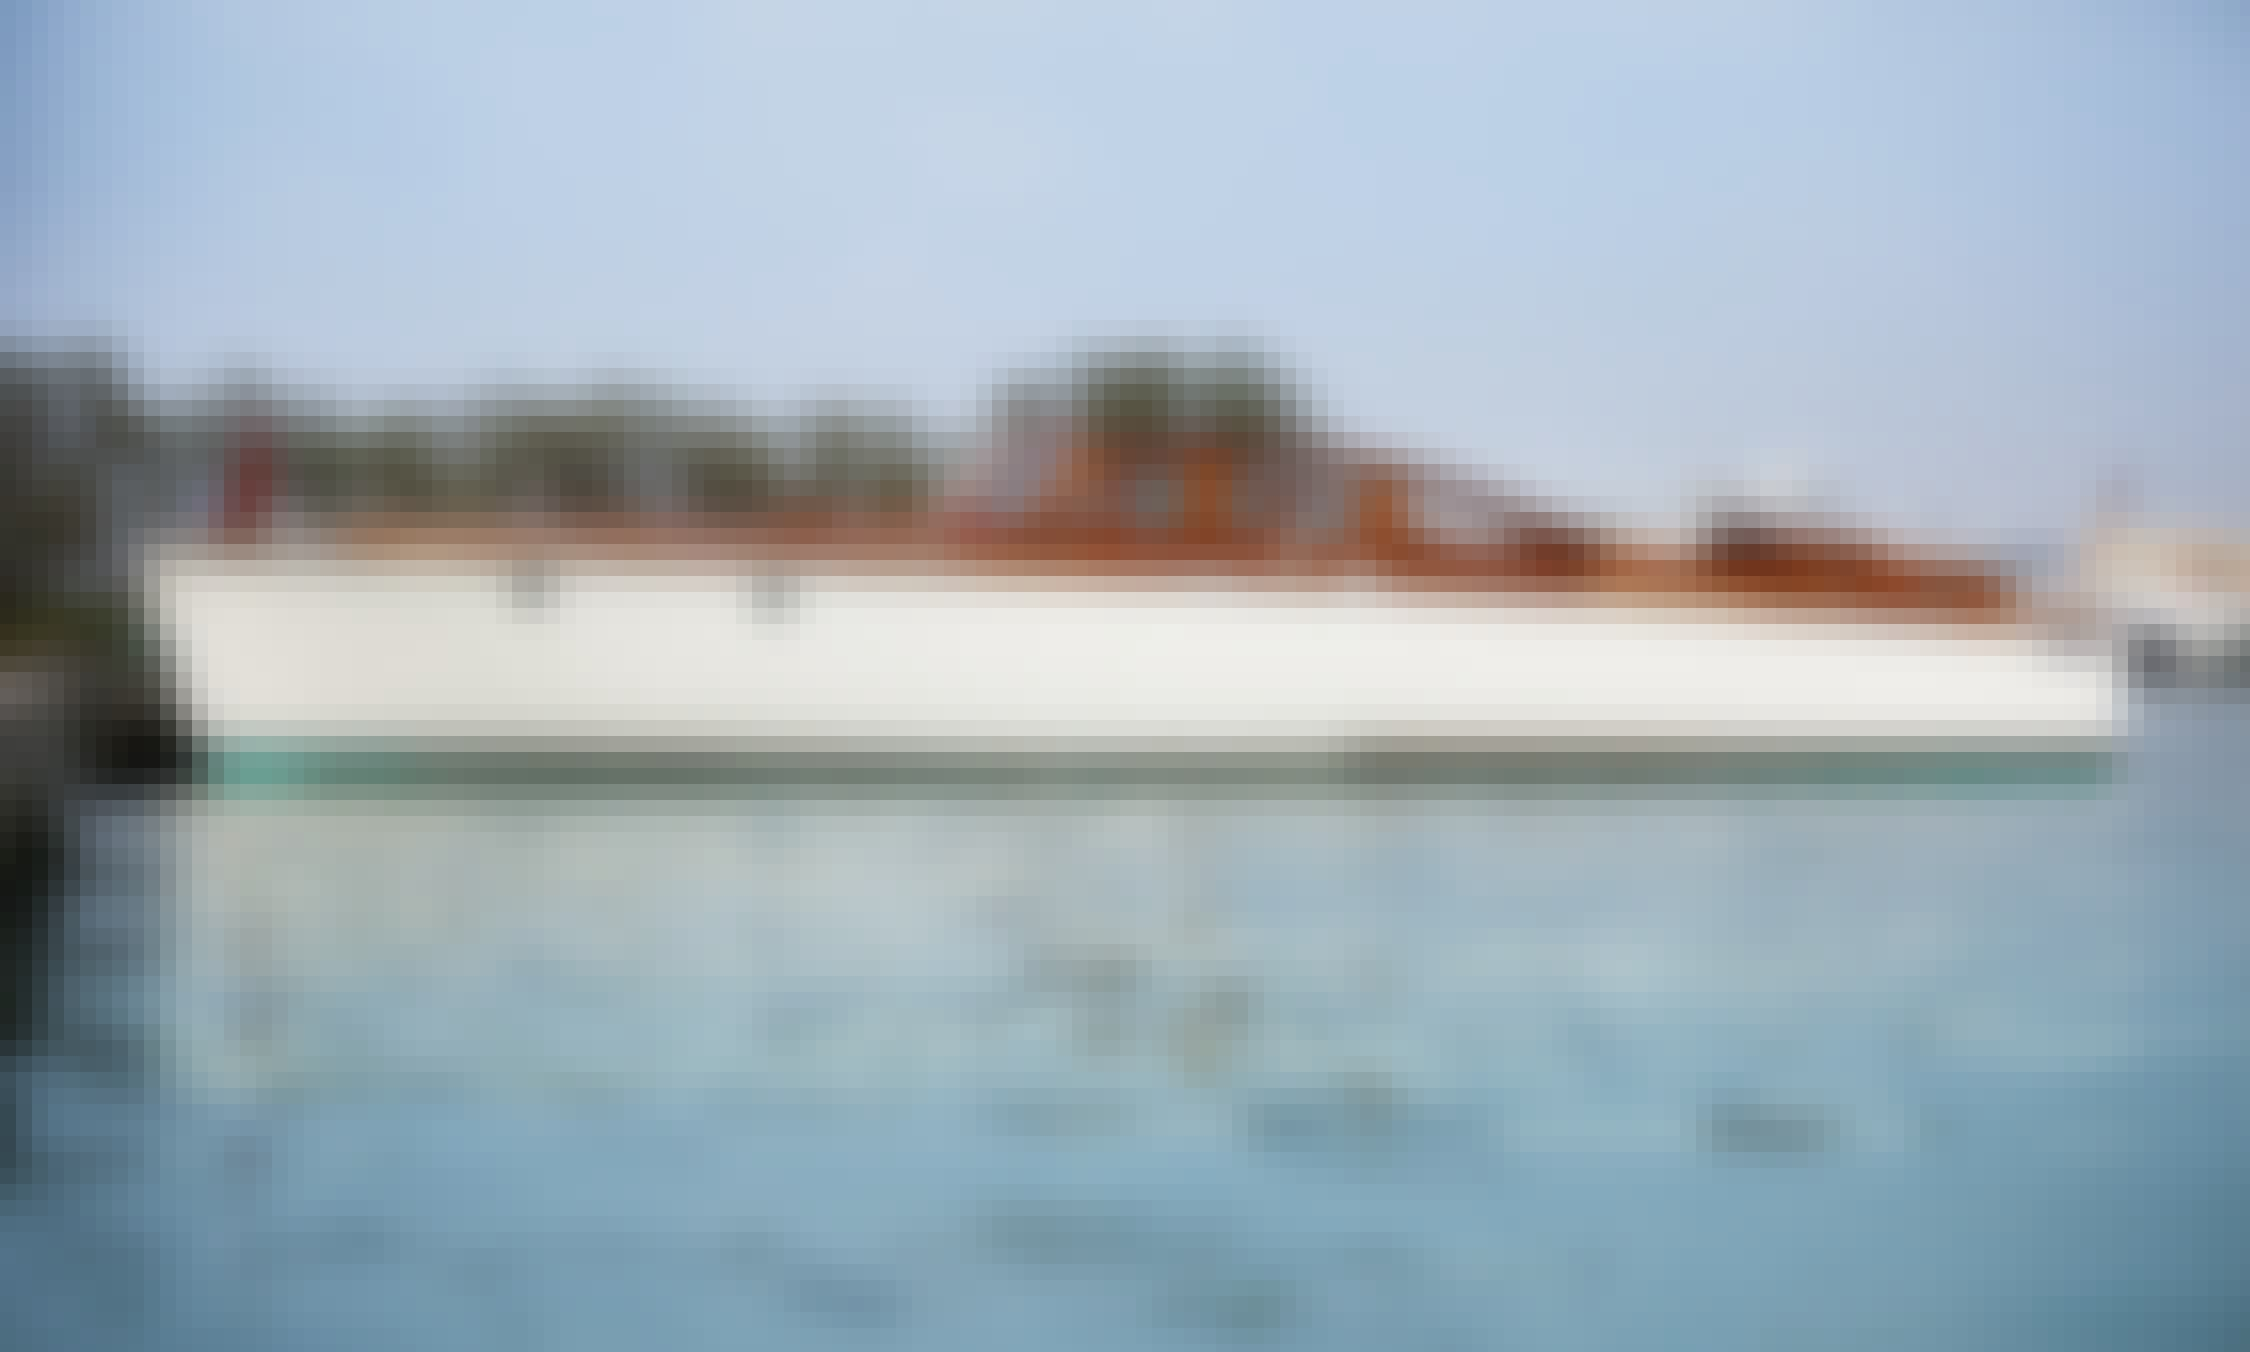 Half Day / Full Day Venice Tour on 31' Vintage Classic Boat for up to 9 people in Venezia, Veneto